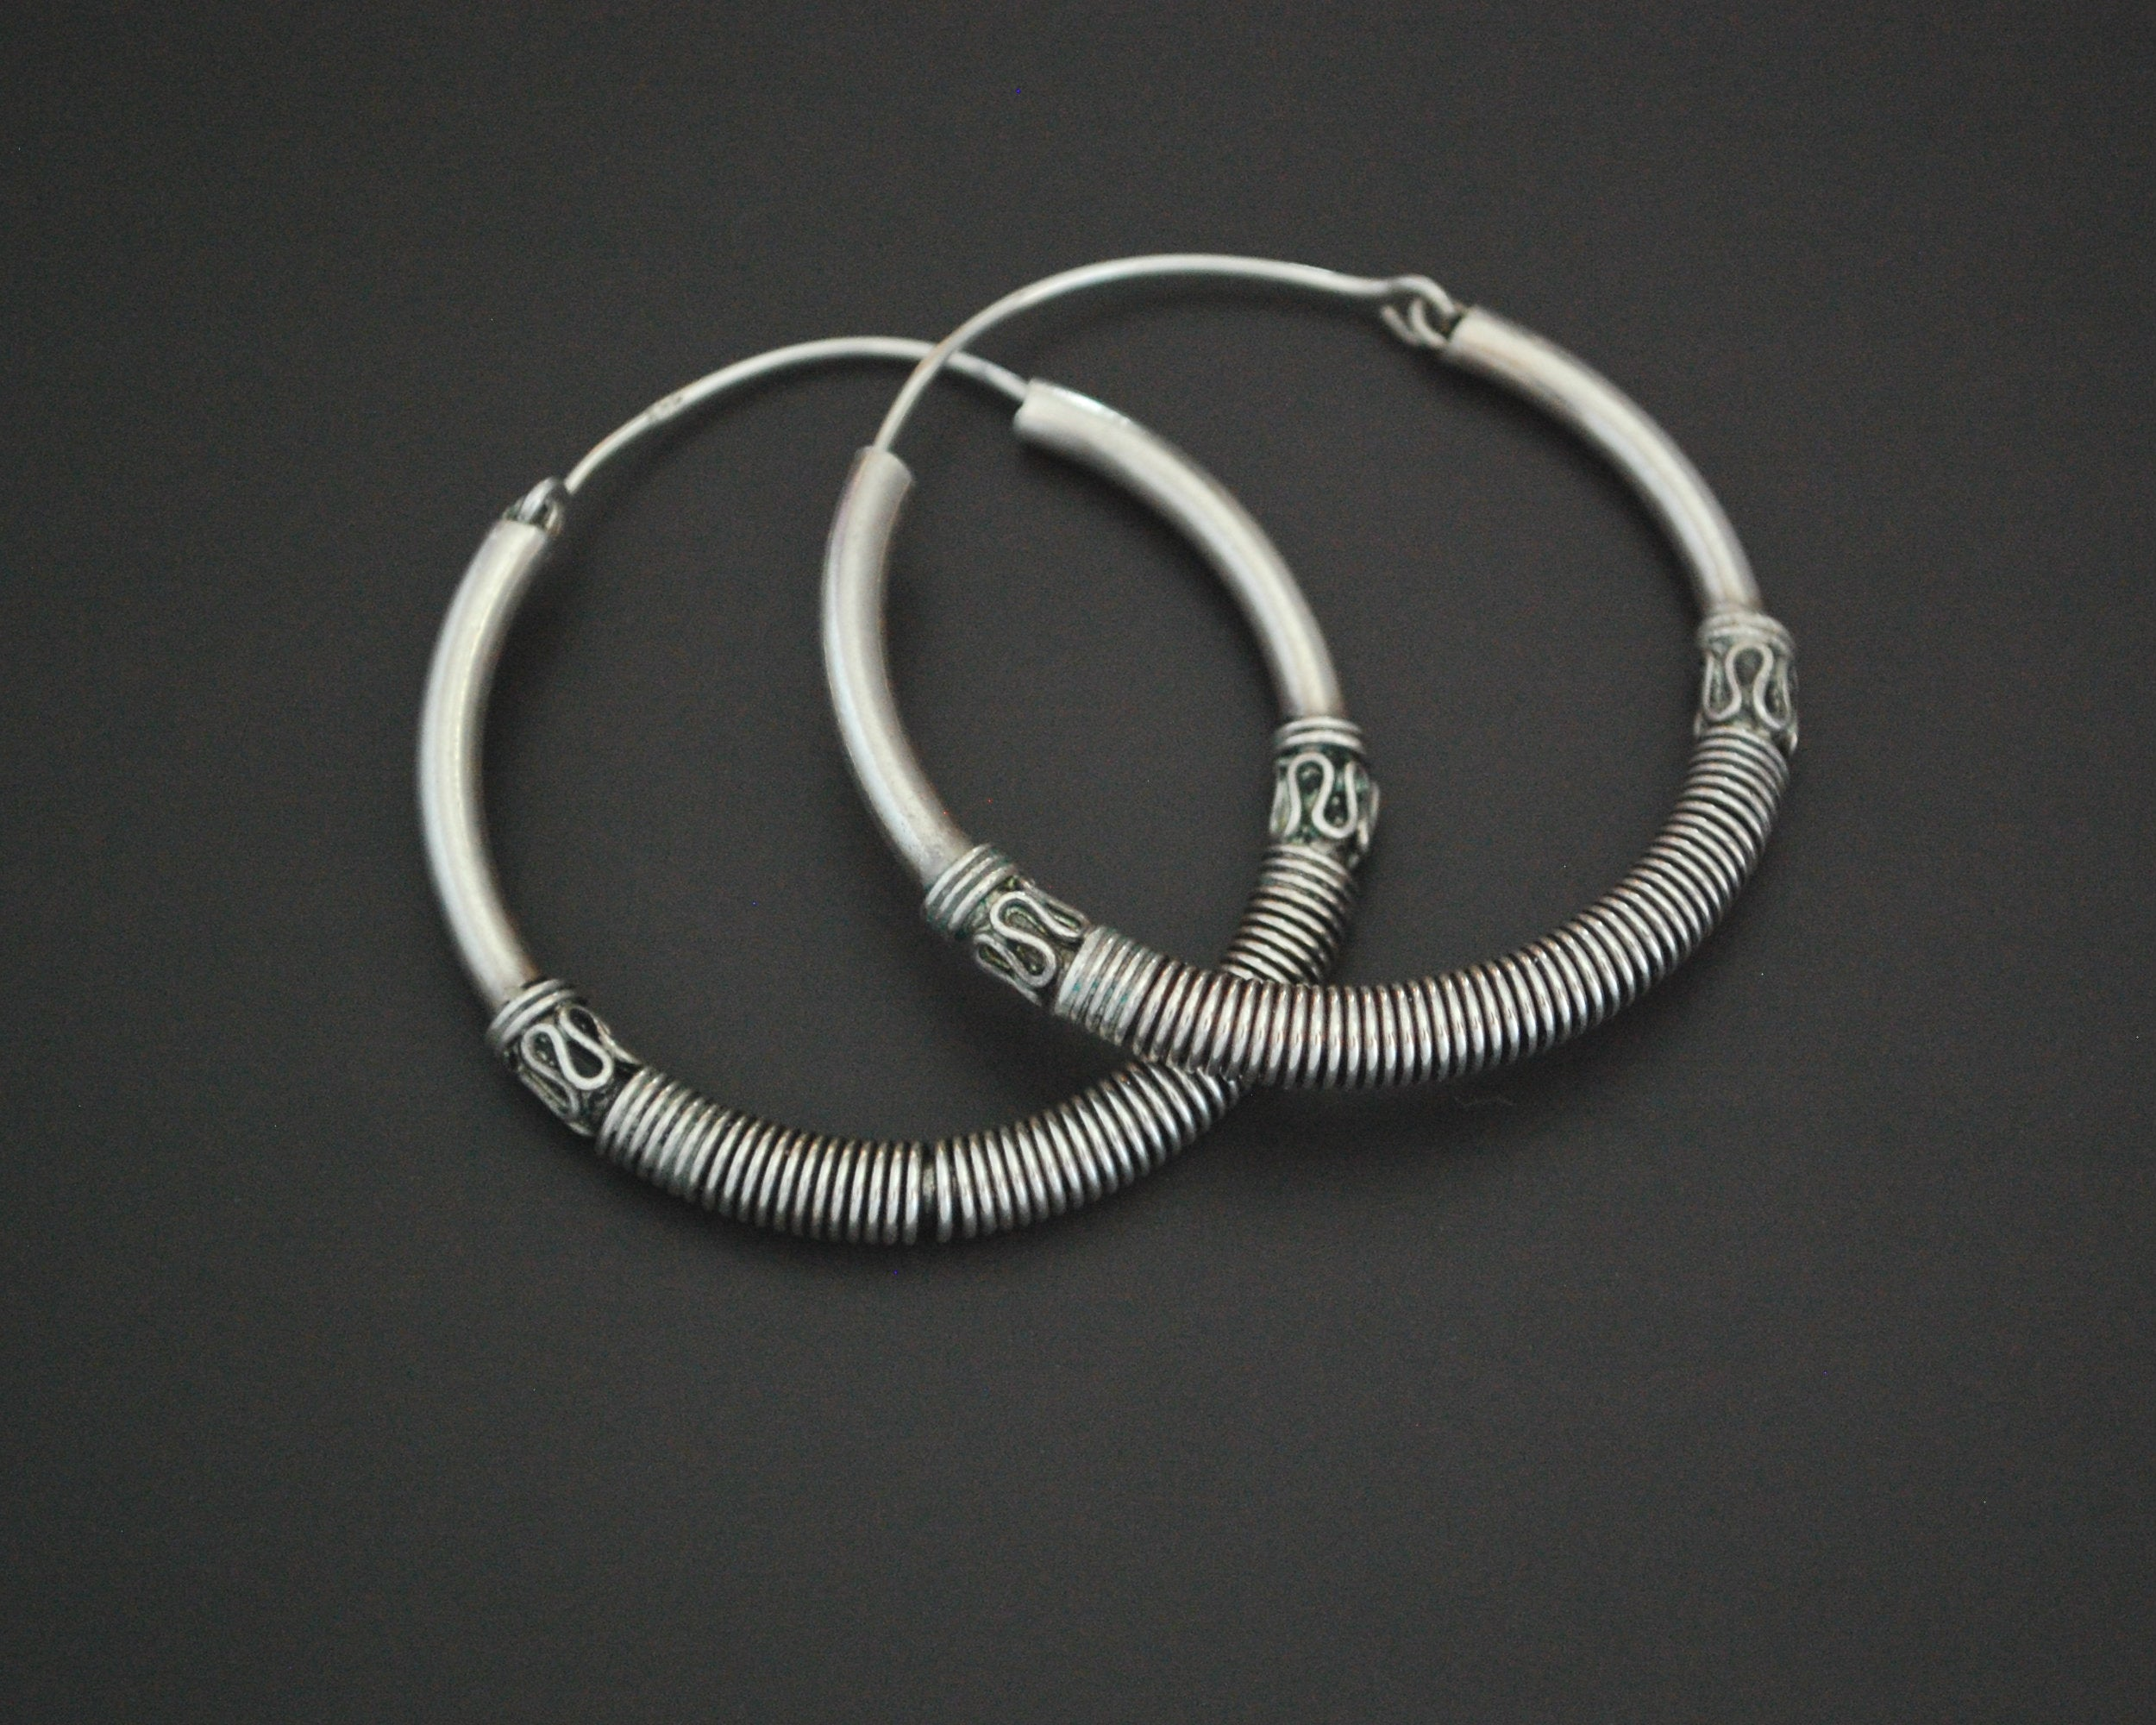 Large Ethnic Bali Hoop Earrings with Wire Work